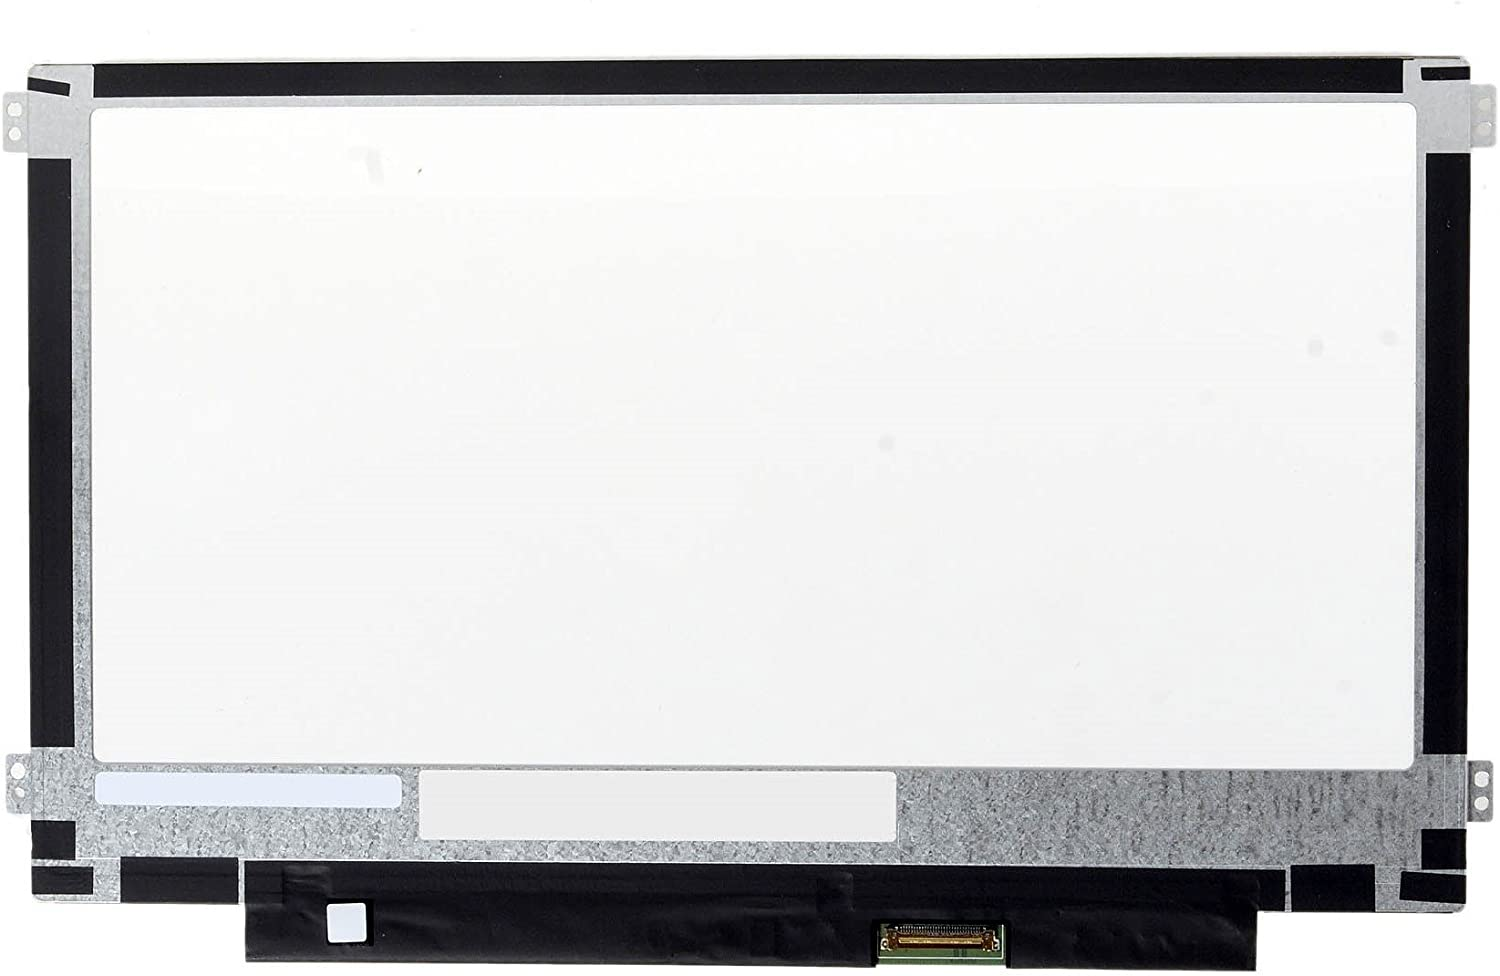 "TechOrbits 11.6"" LED LCD Screen eDP 30PIN Matte for IBM-Lenovo N21 N22 N23 80S6 80SF Series"